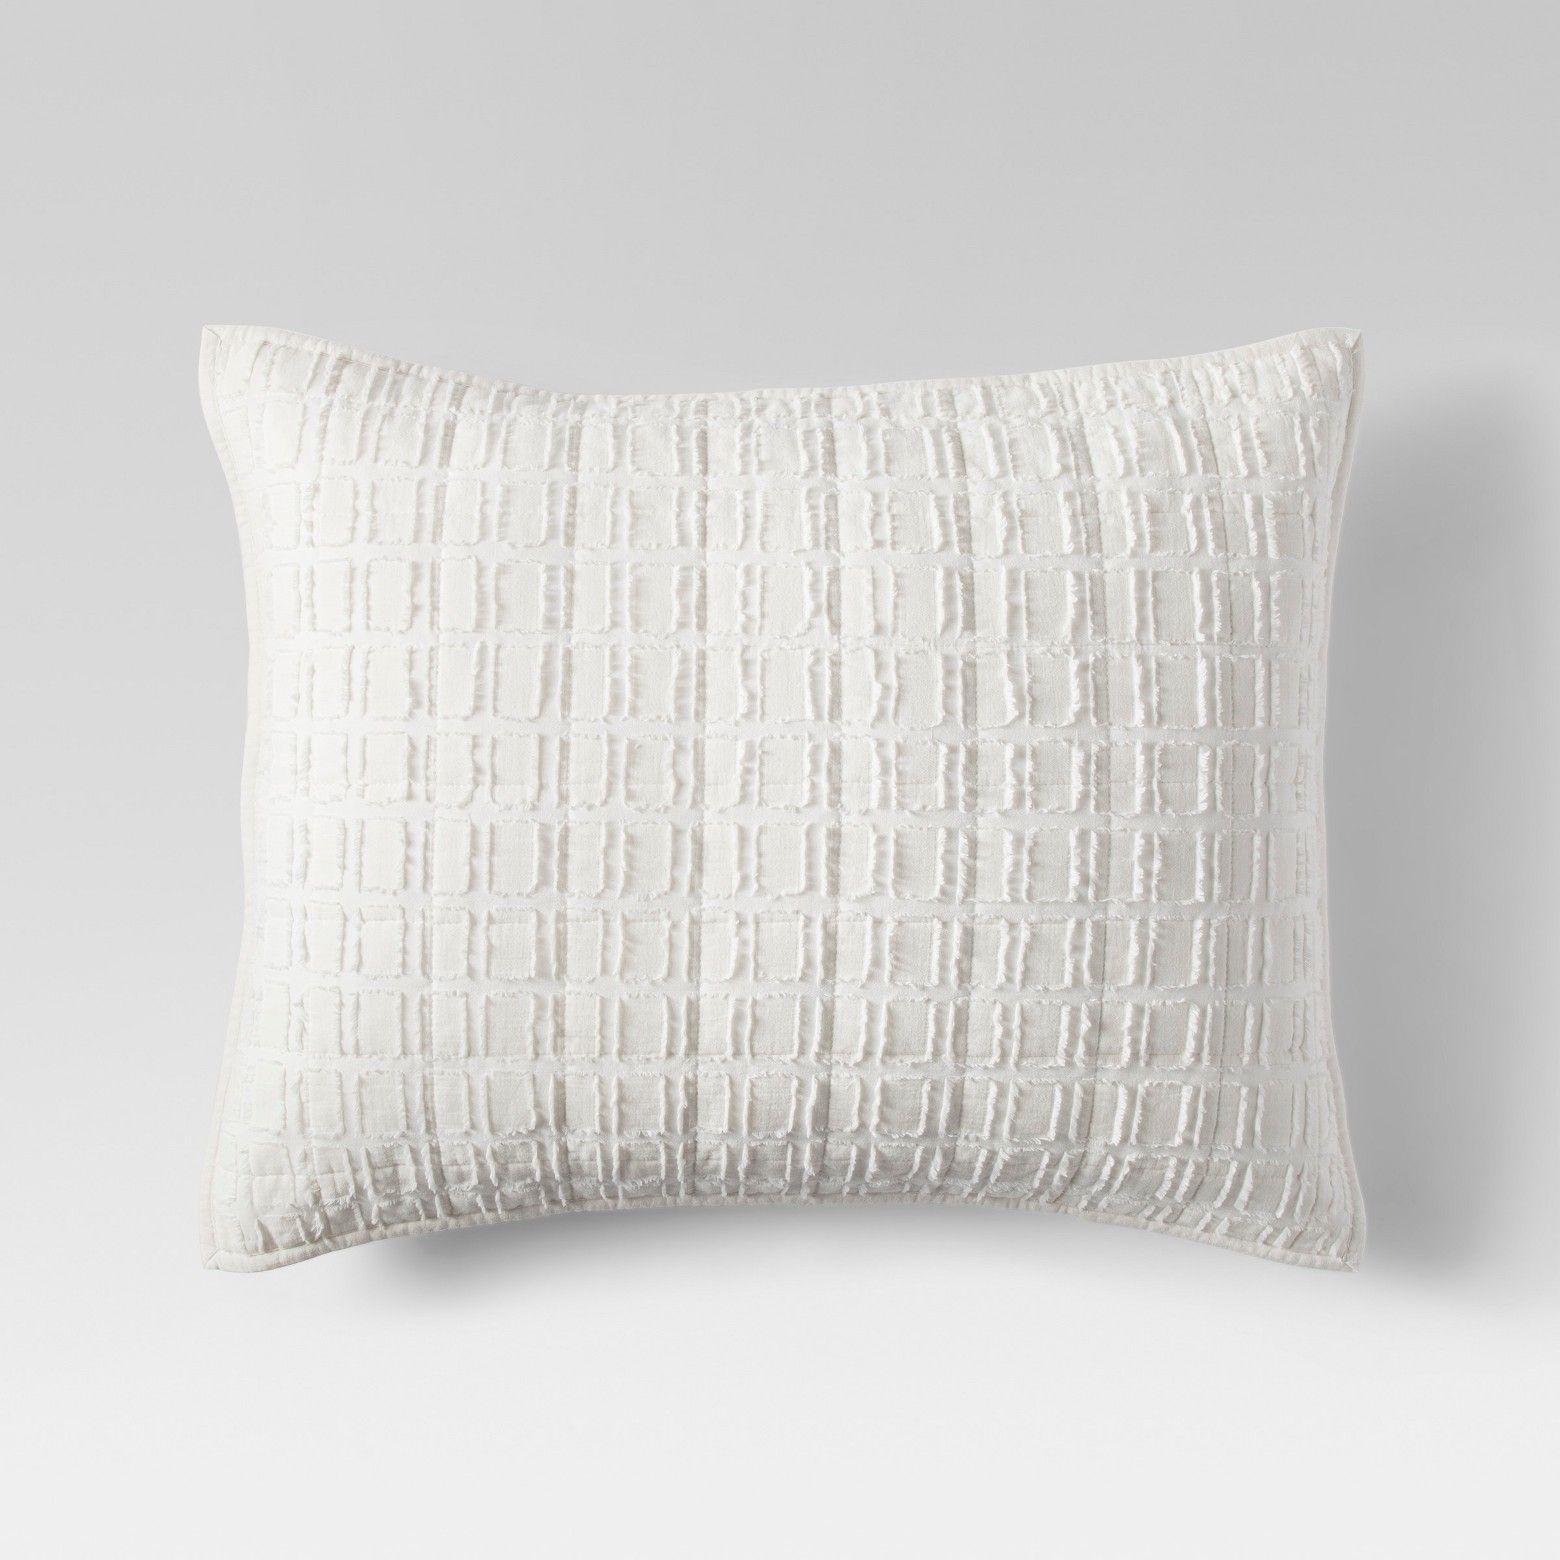 Project cream eyelash grid sham office guest rooms pillows and